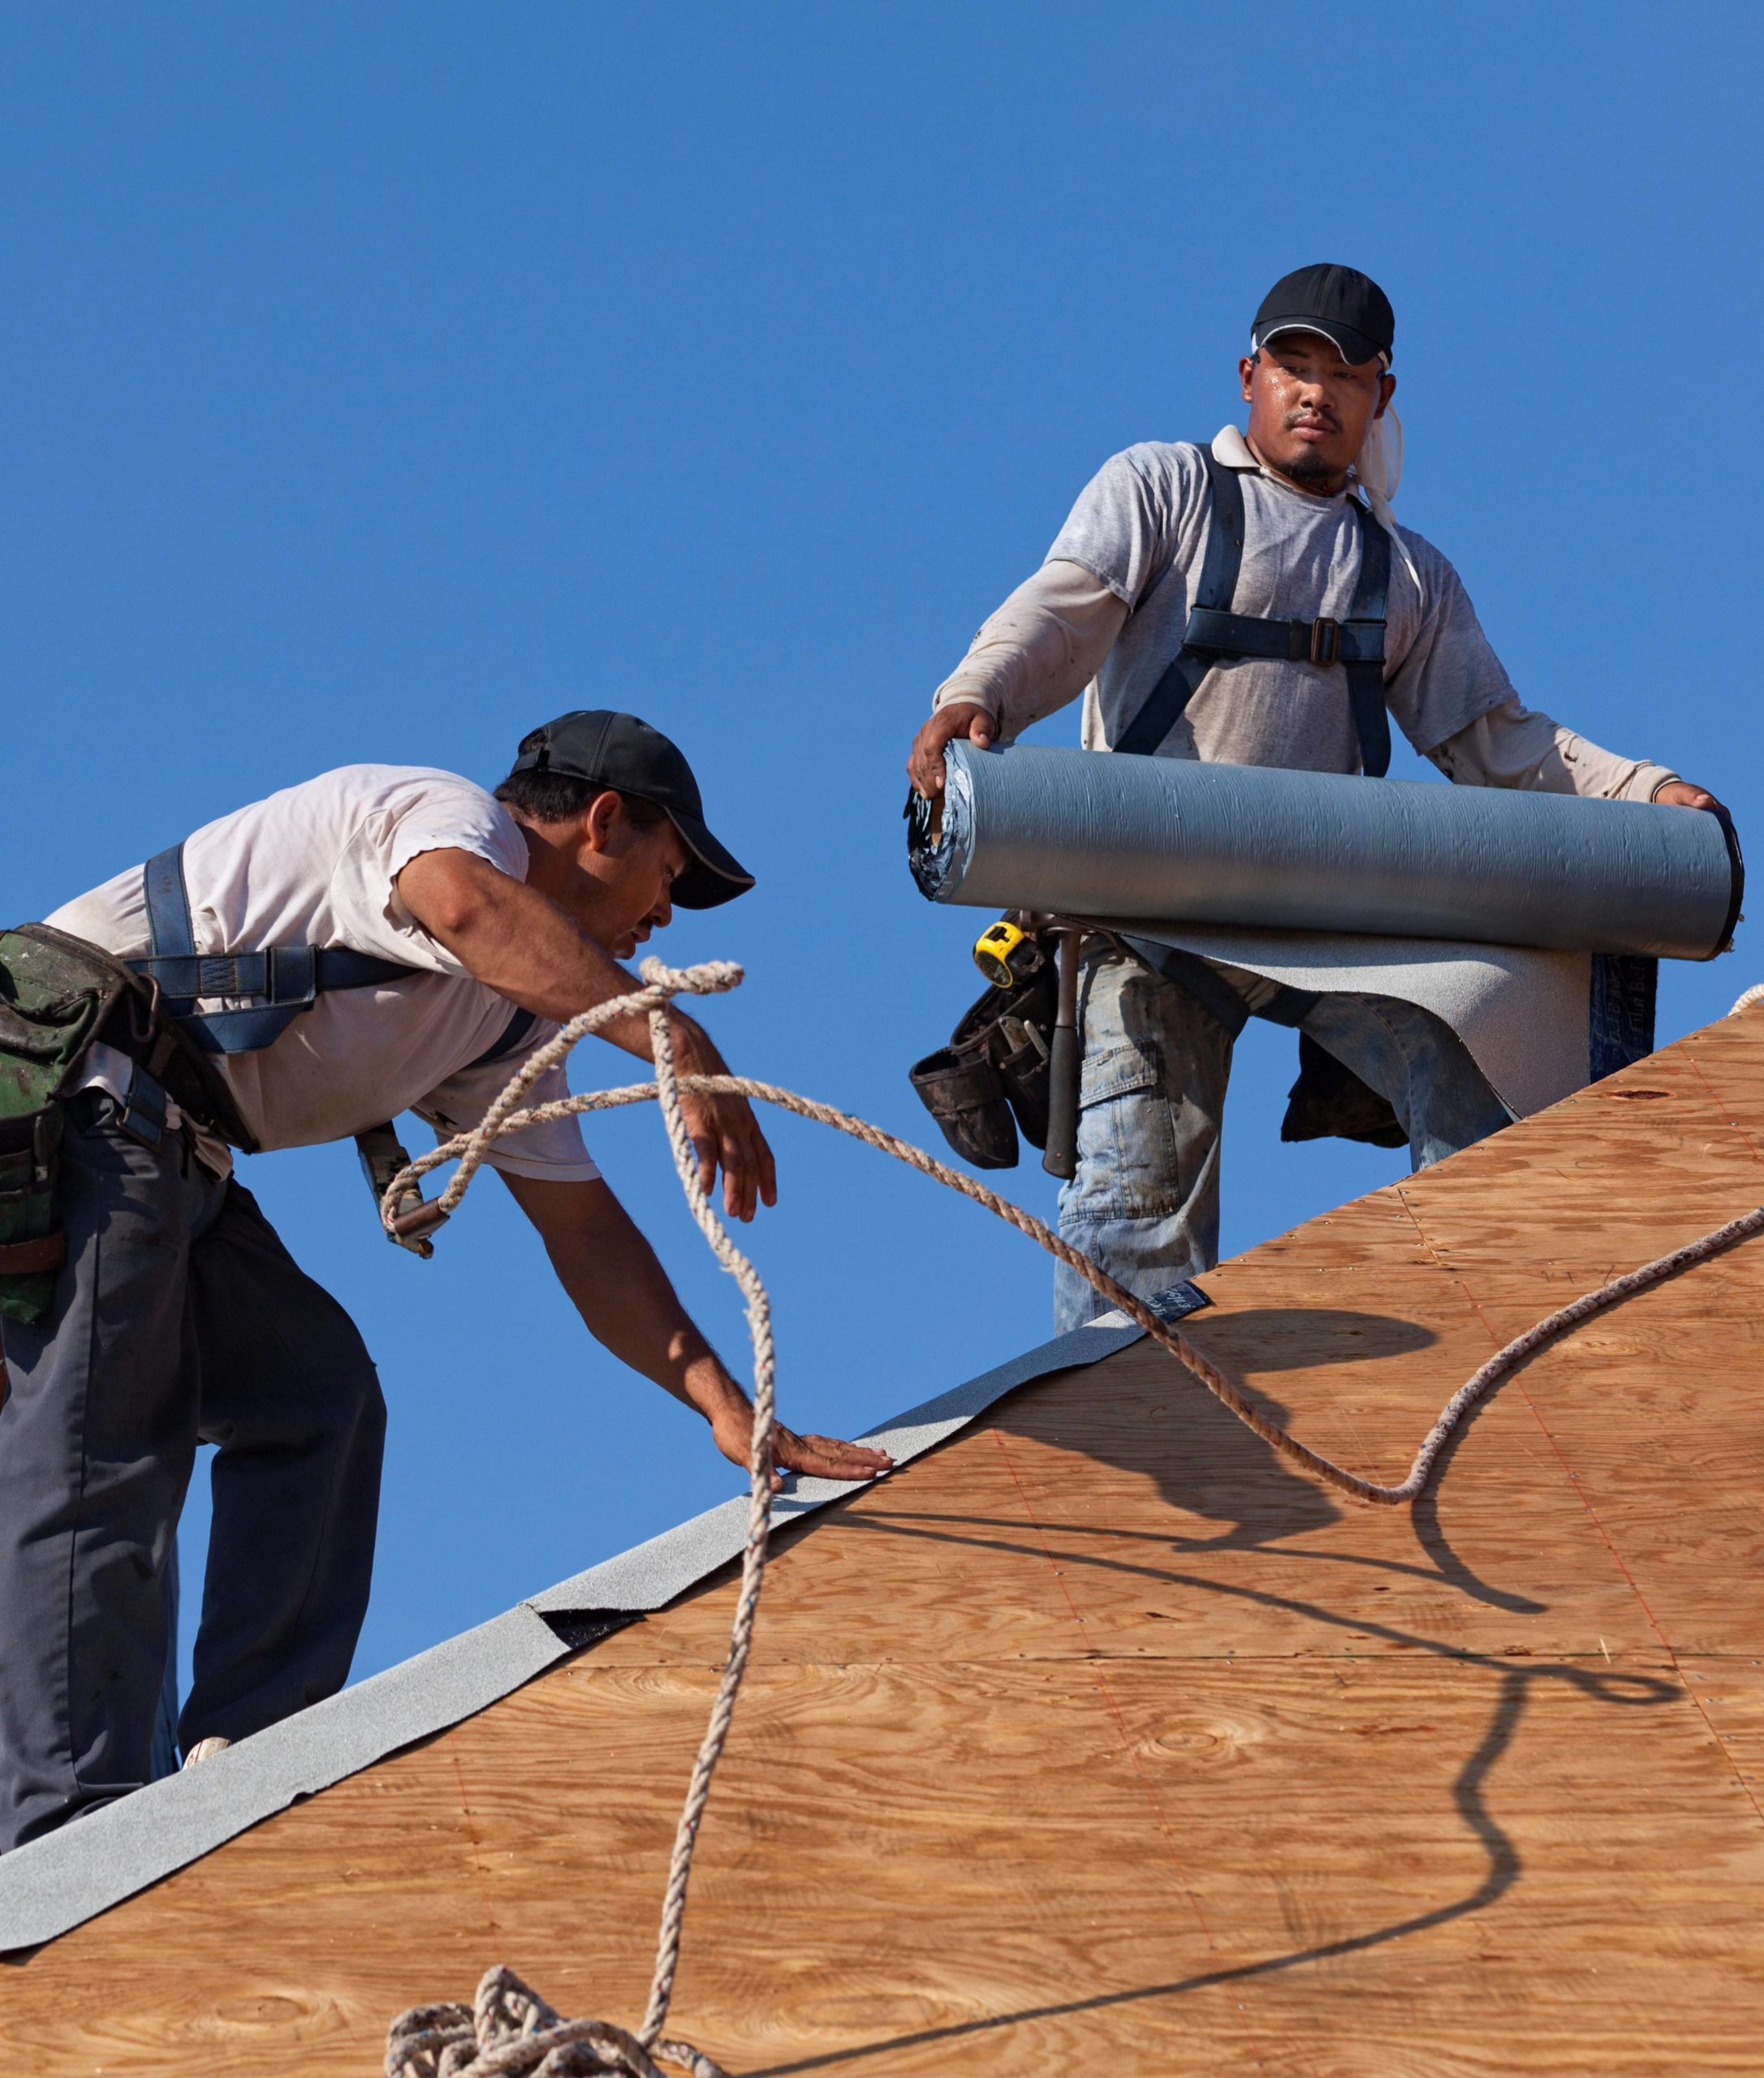 des moines area roofing installation